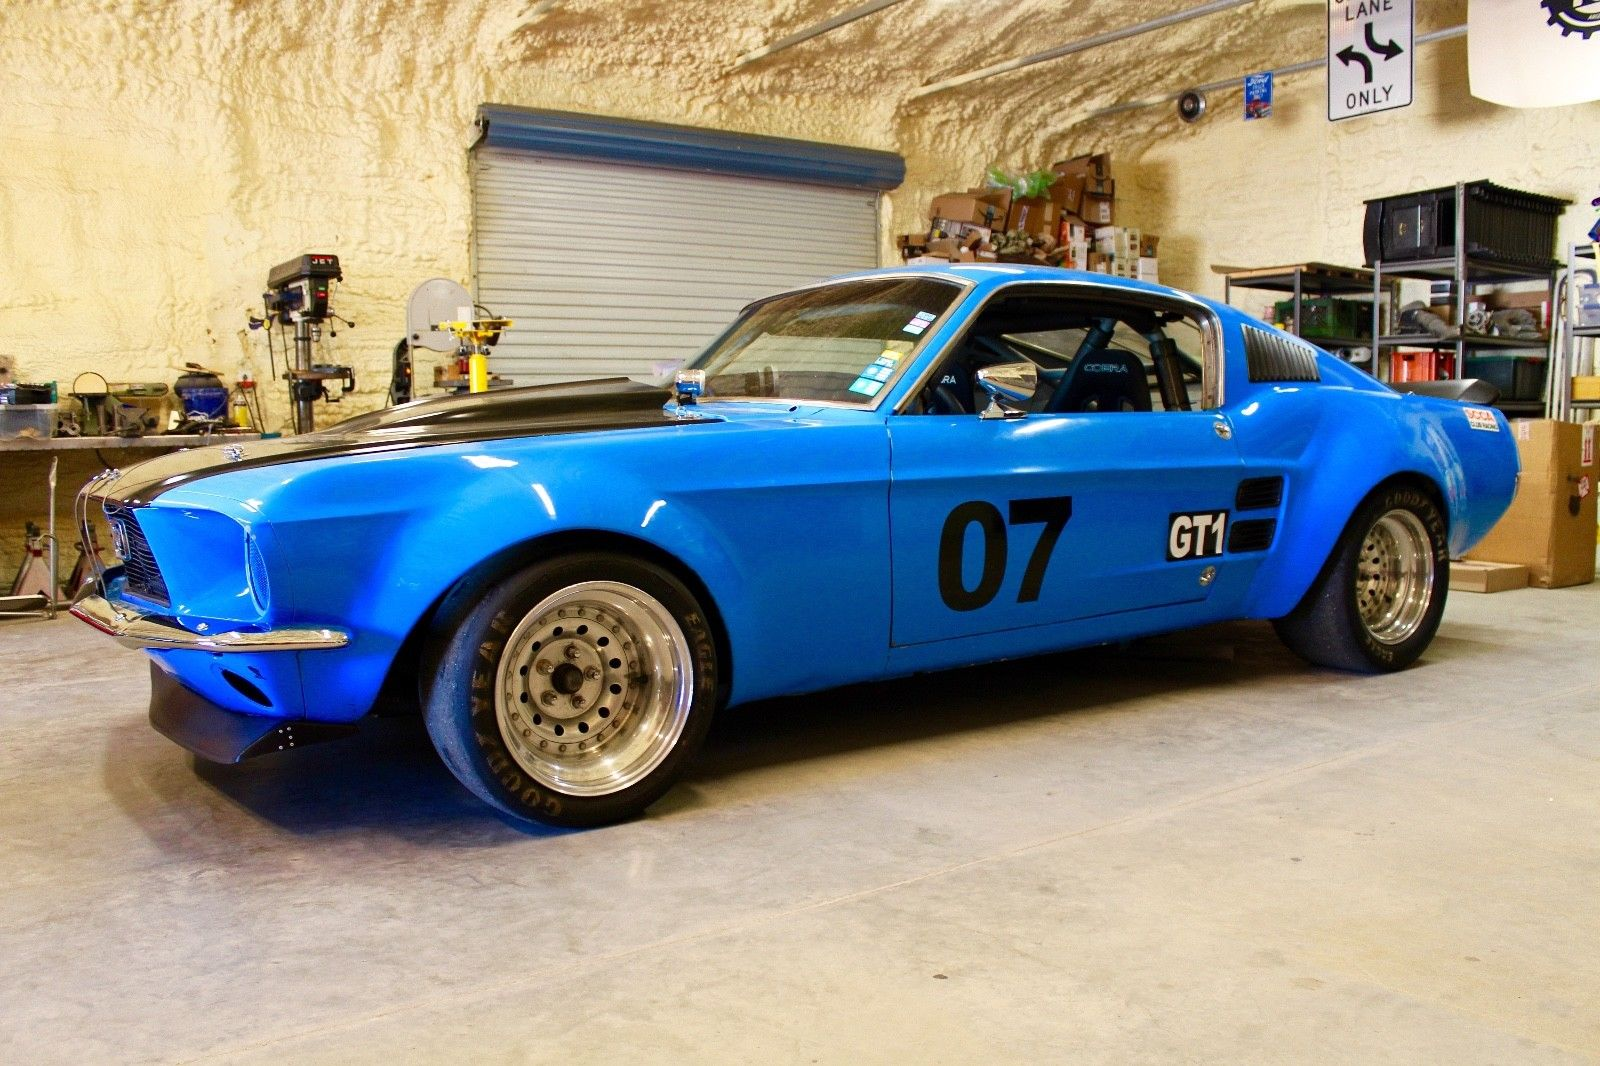 Awesomeamazinggreat Ford Mustang Ford Mustang Fastback Race Car